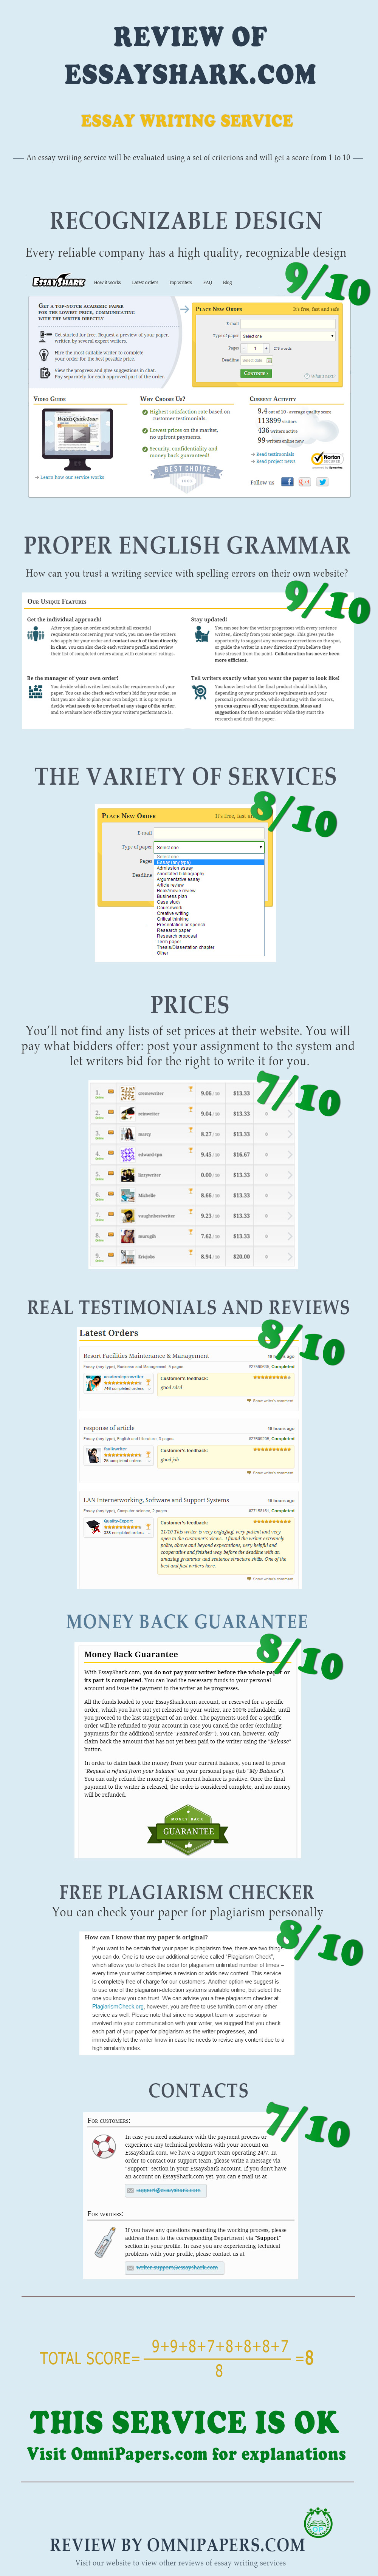 essayshark com review score true sample available infographic review of essayshark com